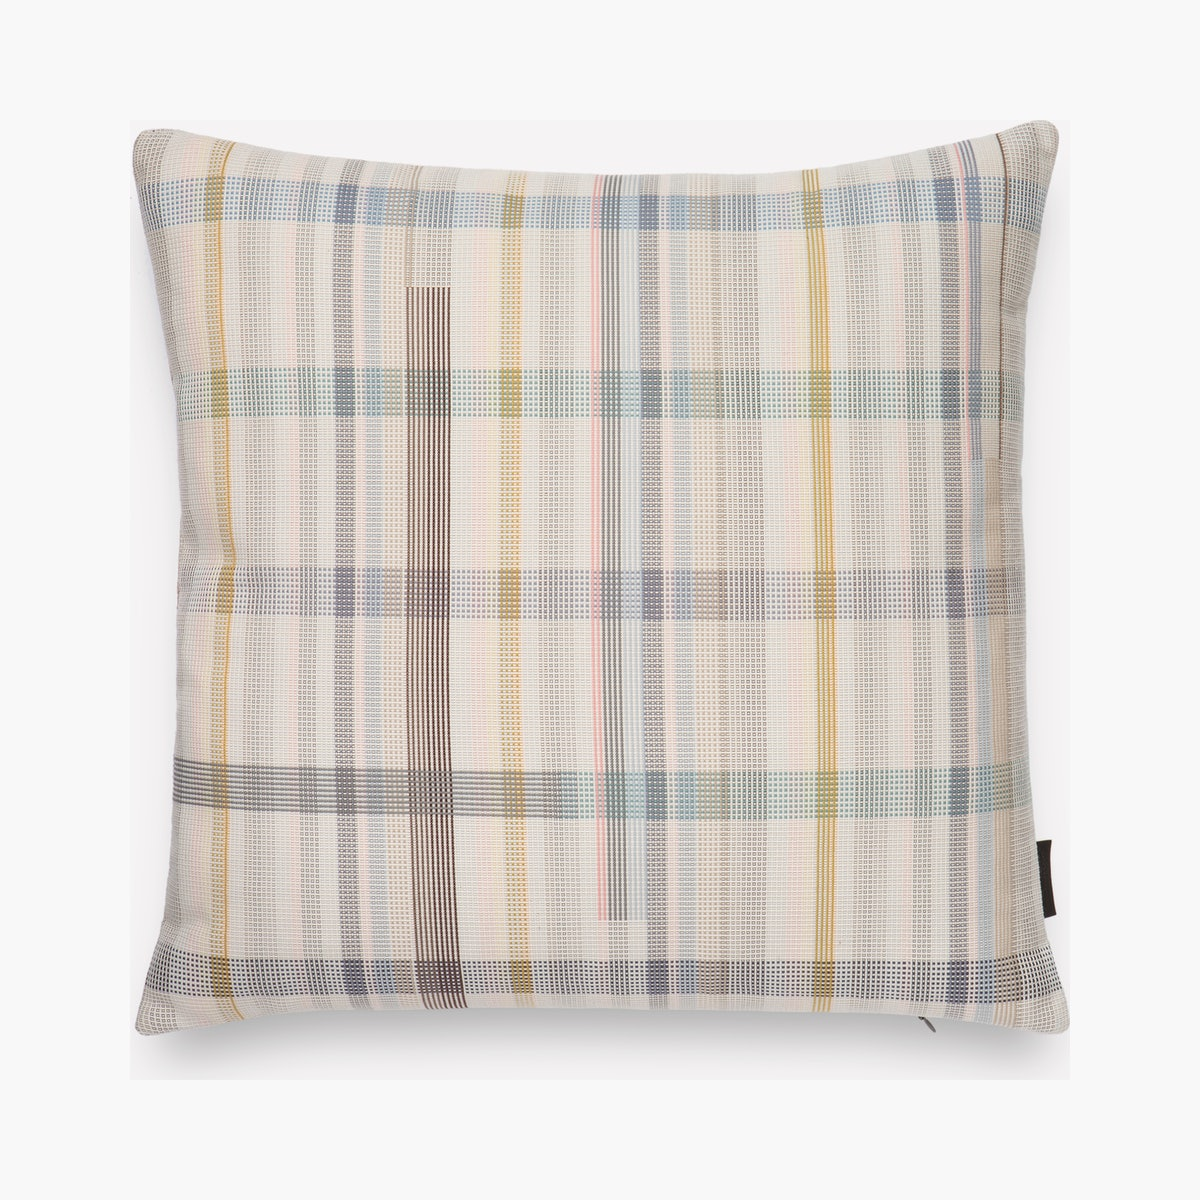 Darning Sampler Plaid Pillow